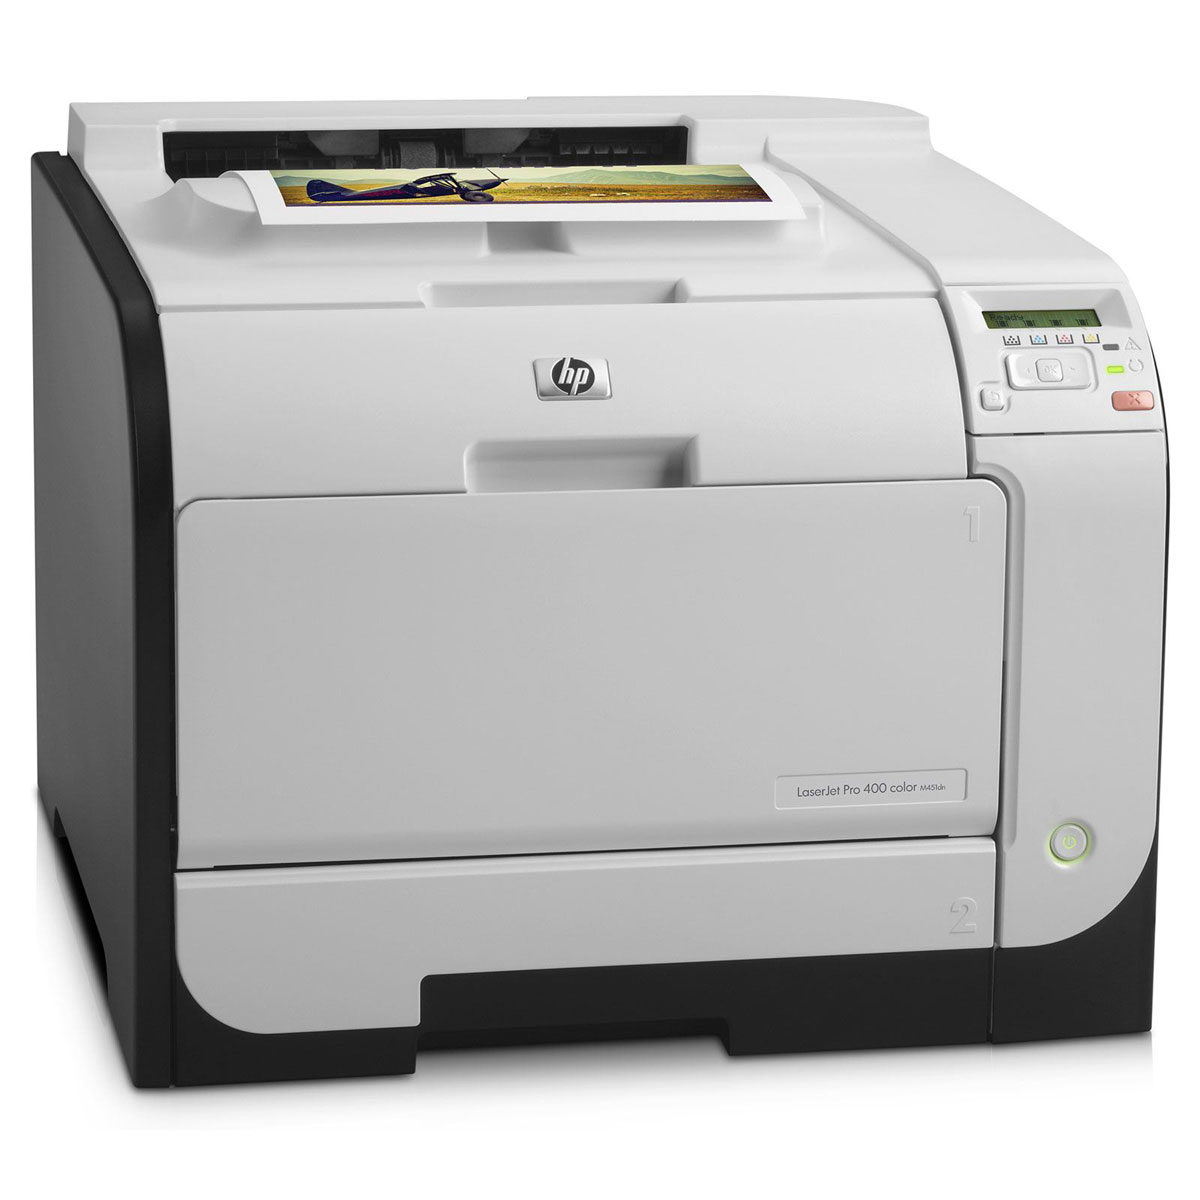 hp laserjet pro m451dn ce957a imprimante laser hp sur. Black Bedroom Furniture Sets. Home Design Ideas